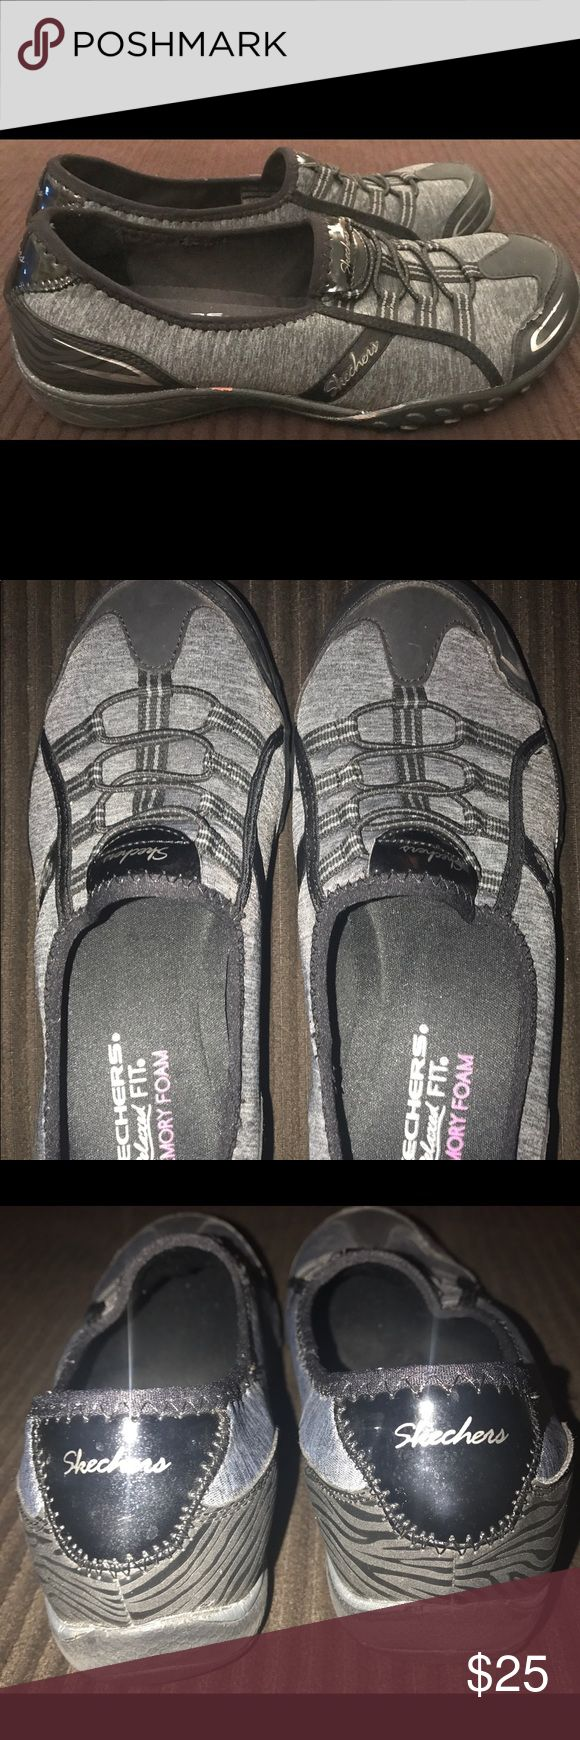 Ladies shoes Skechers relaxed fit memory foam slip on. Dark gray and black. Great condition. Skechers Shoes Athletic Shoes